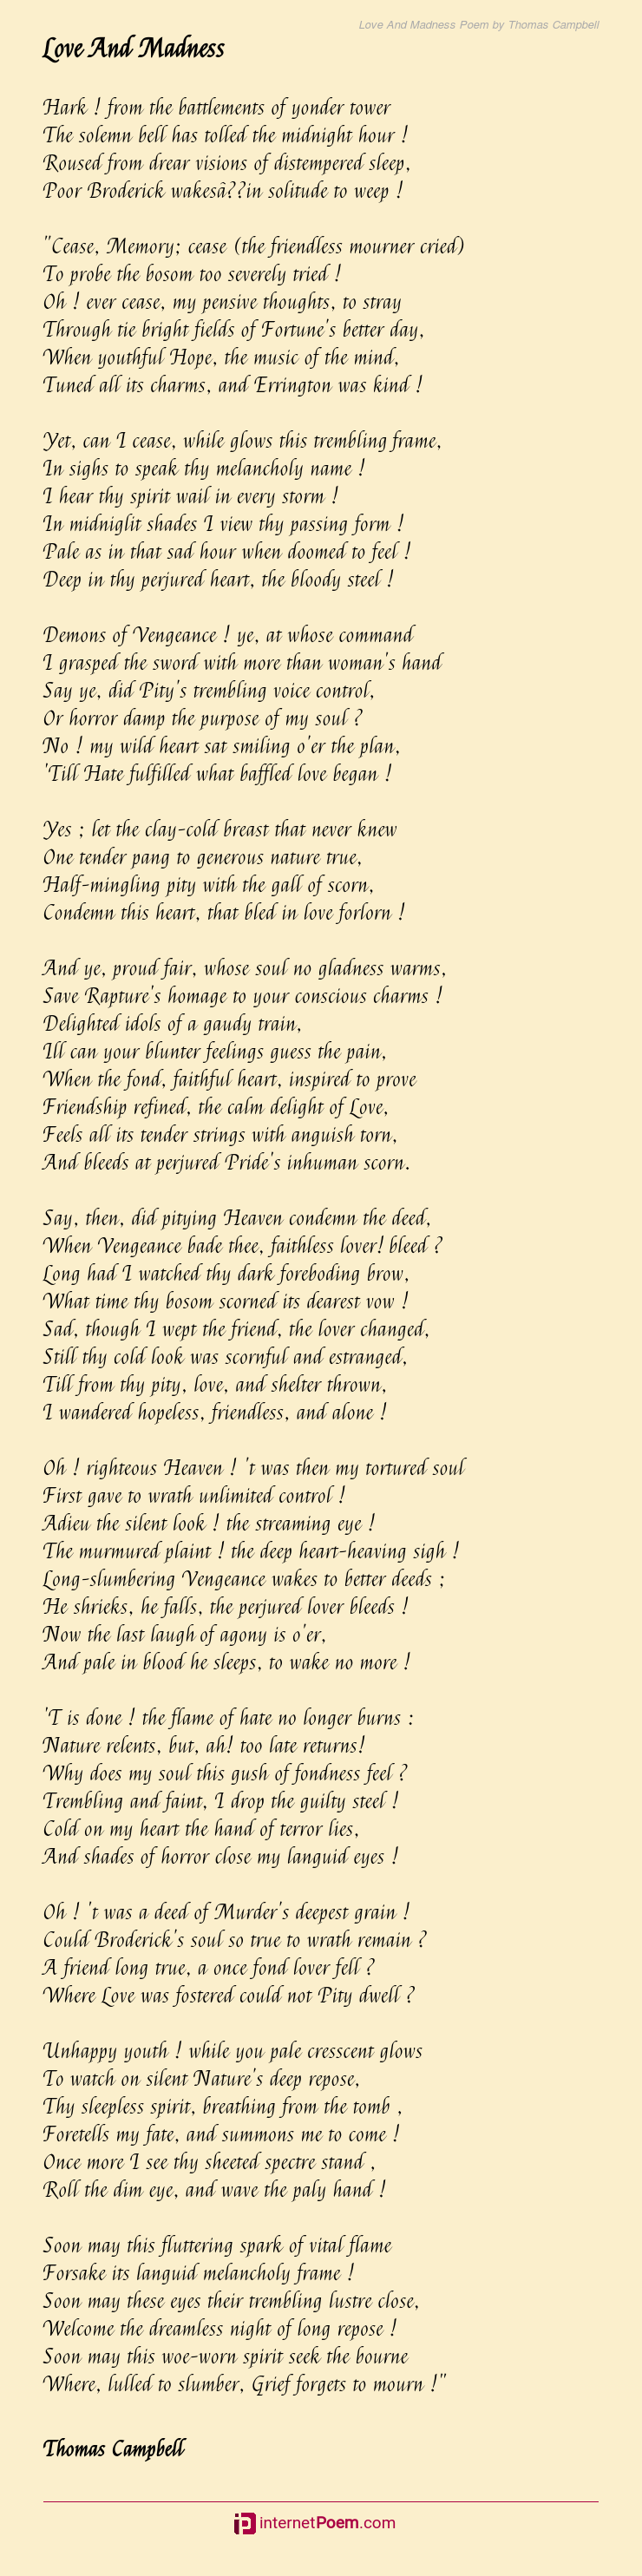 Love And Madness Poem By Thomas Campbell